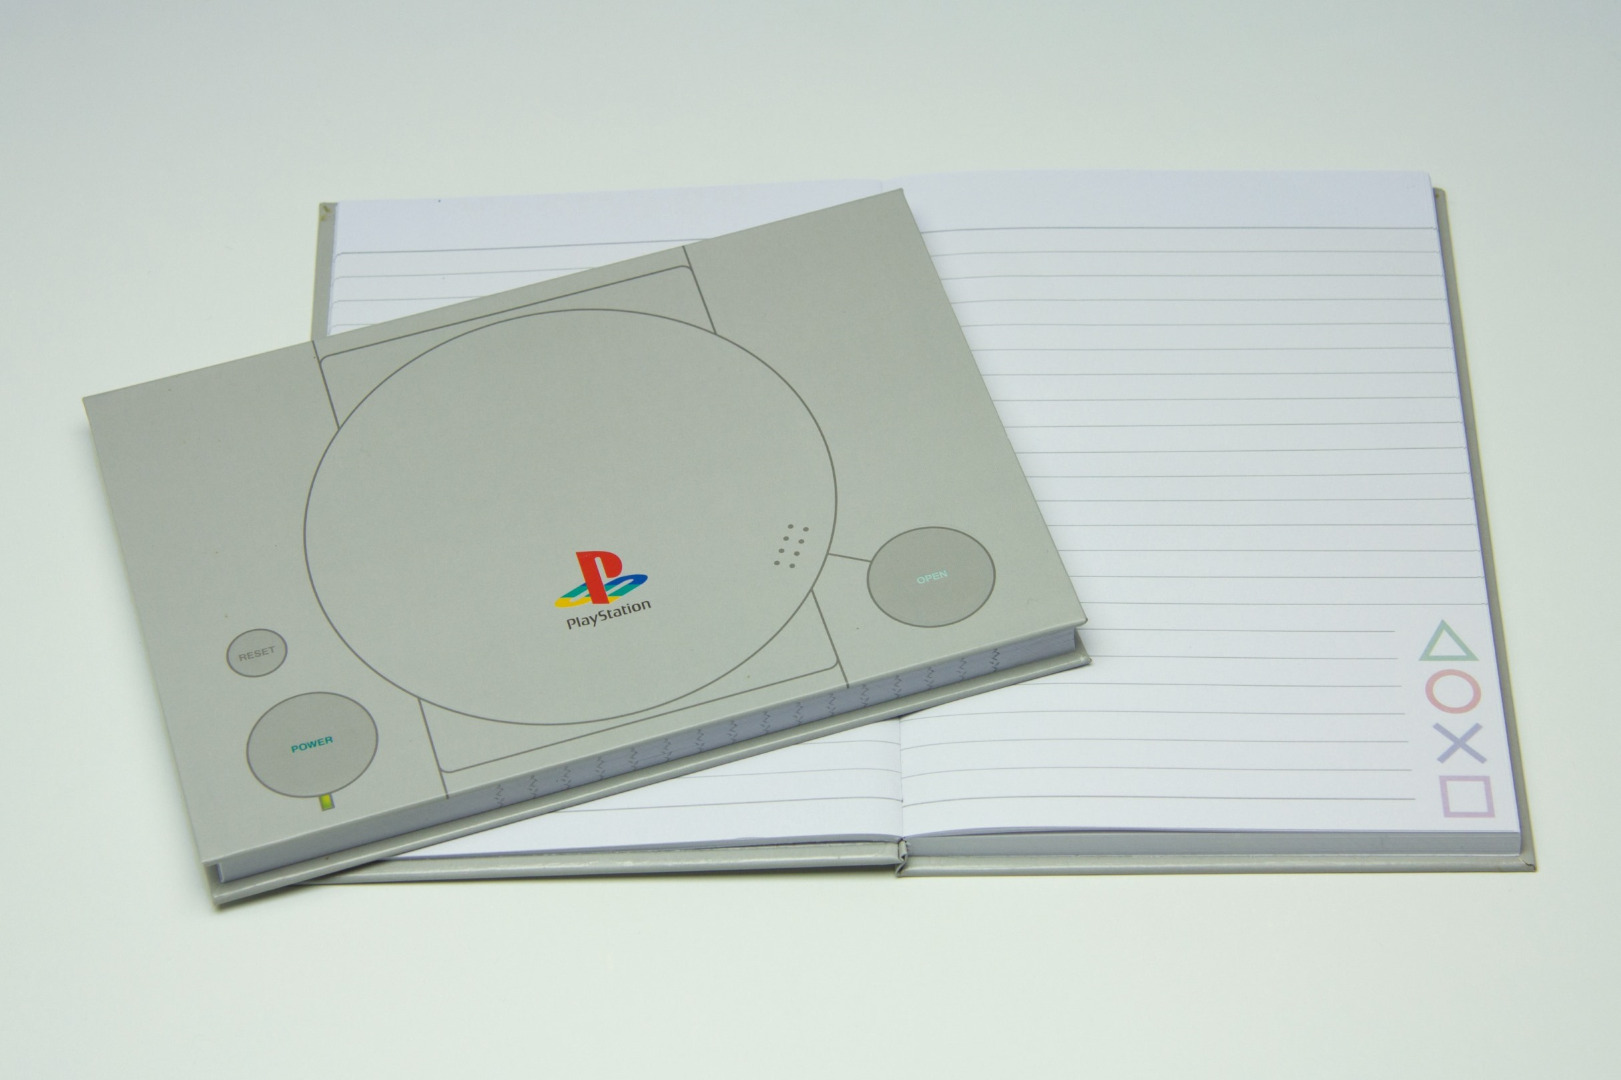 Playstation: Notebook A5